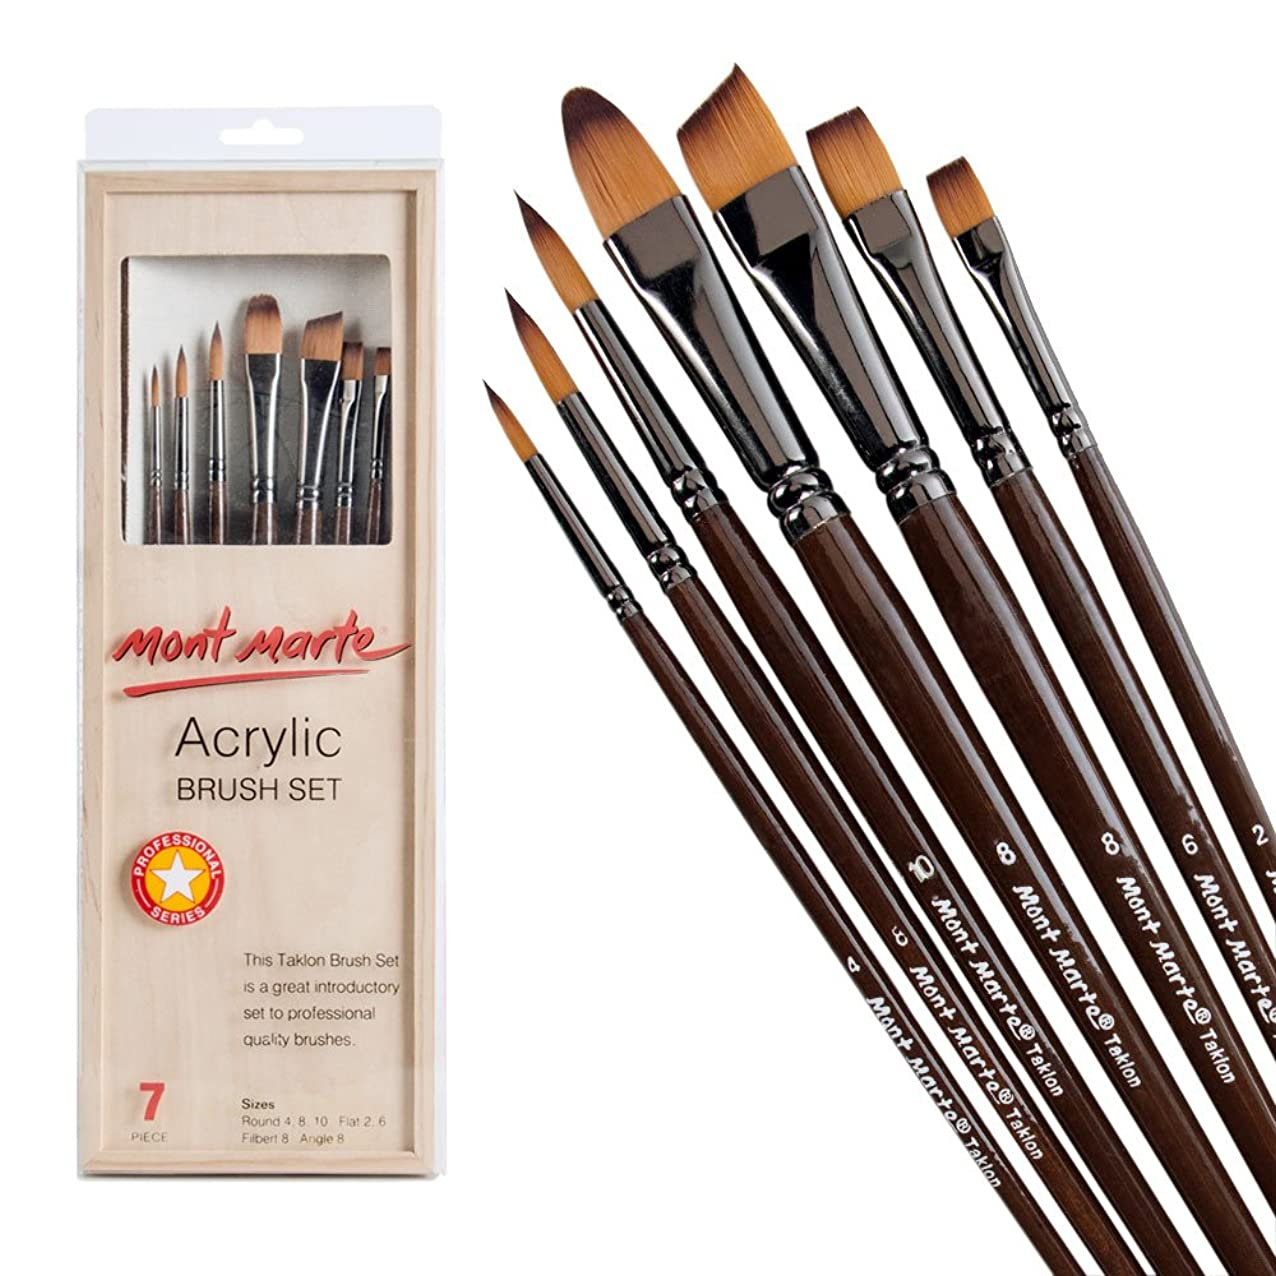 Mont Marte Acrylic Brush Set In Box, 7 Piece. Excellent Selection Of Common Brushes Used For Acrylic Painting Including Round, Flat, Filbert And Angle. uqdlxydpwgmuf952